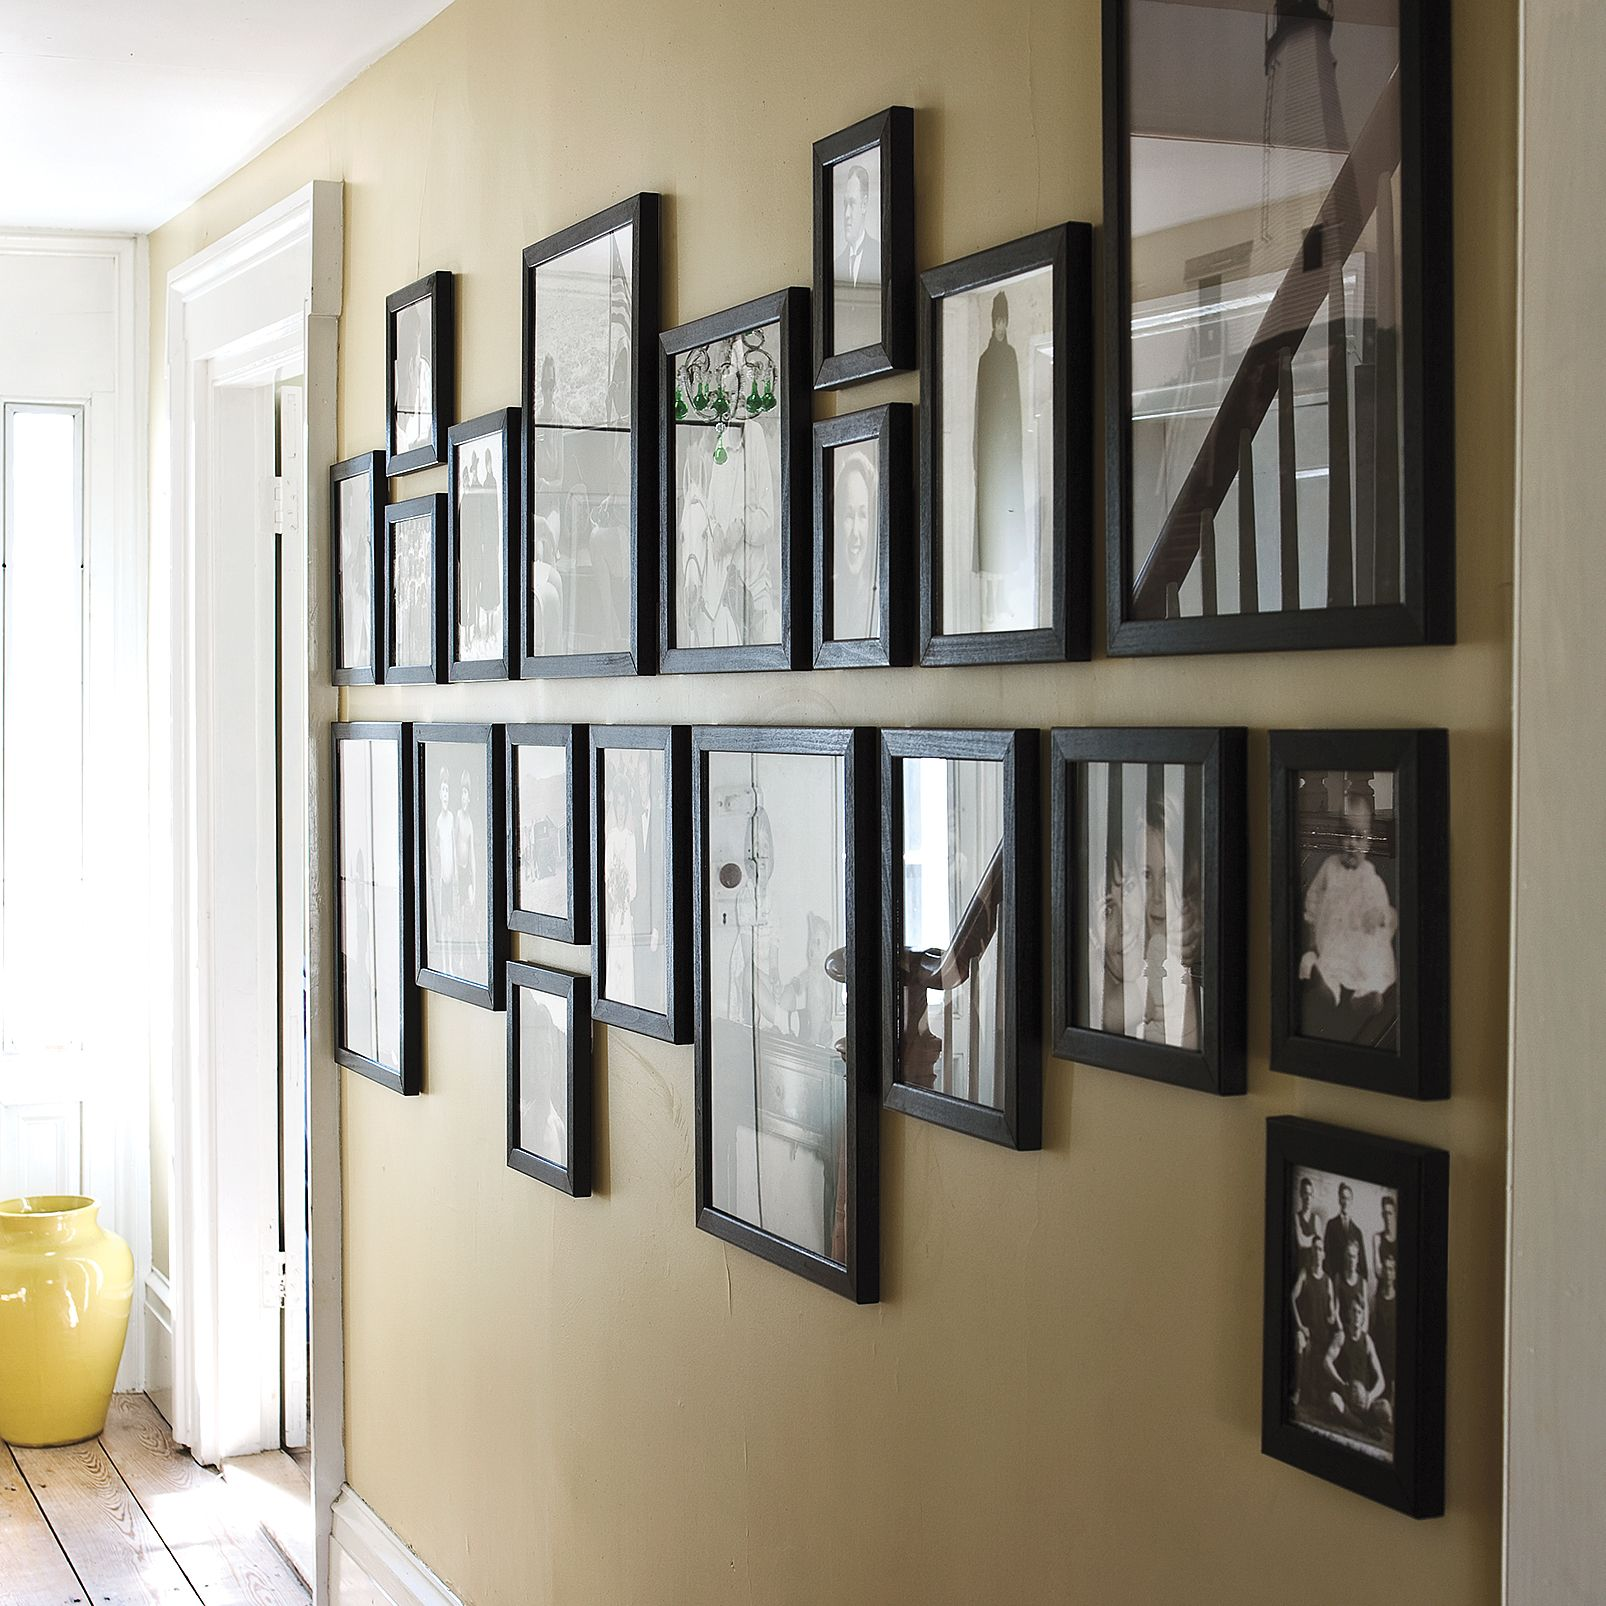 Weekend project create gallery walls photo grouping wall ideas